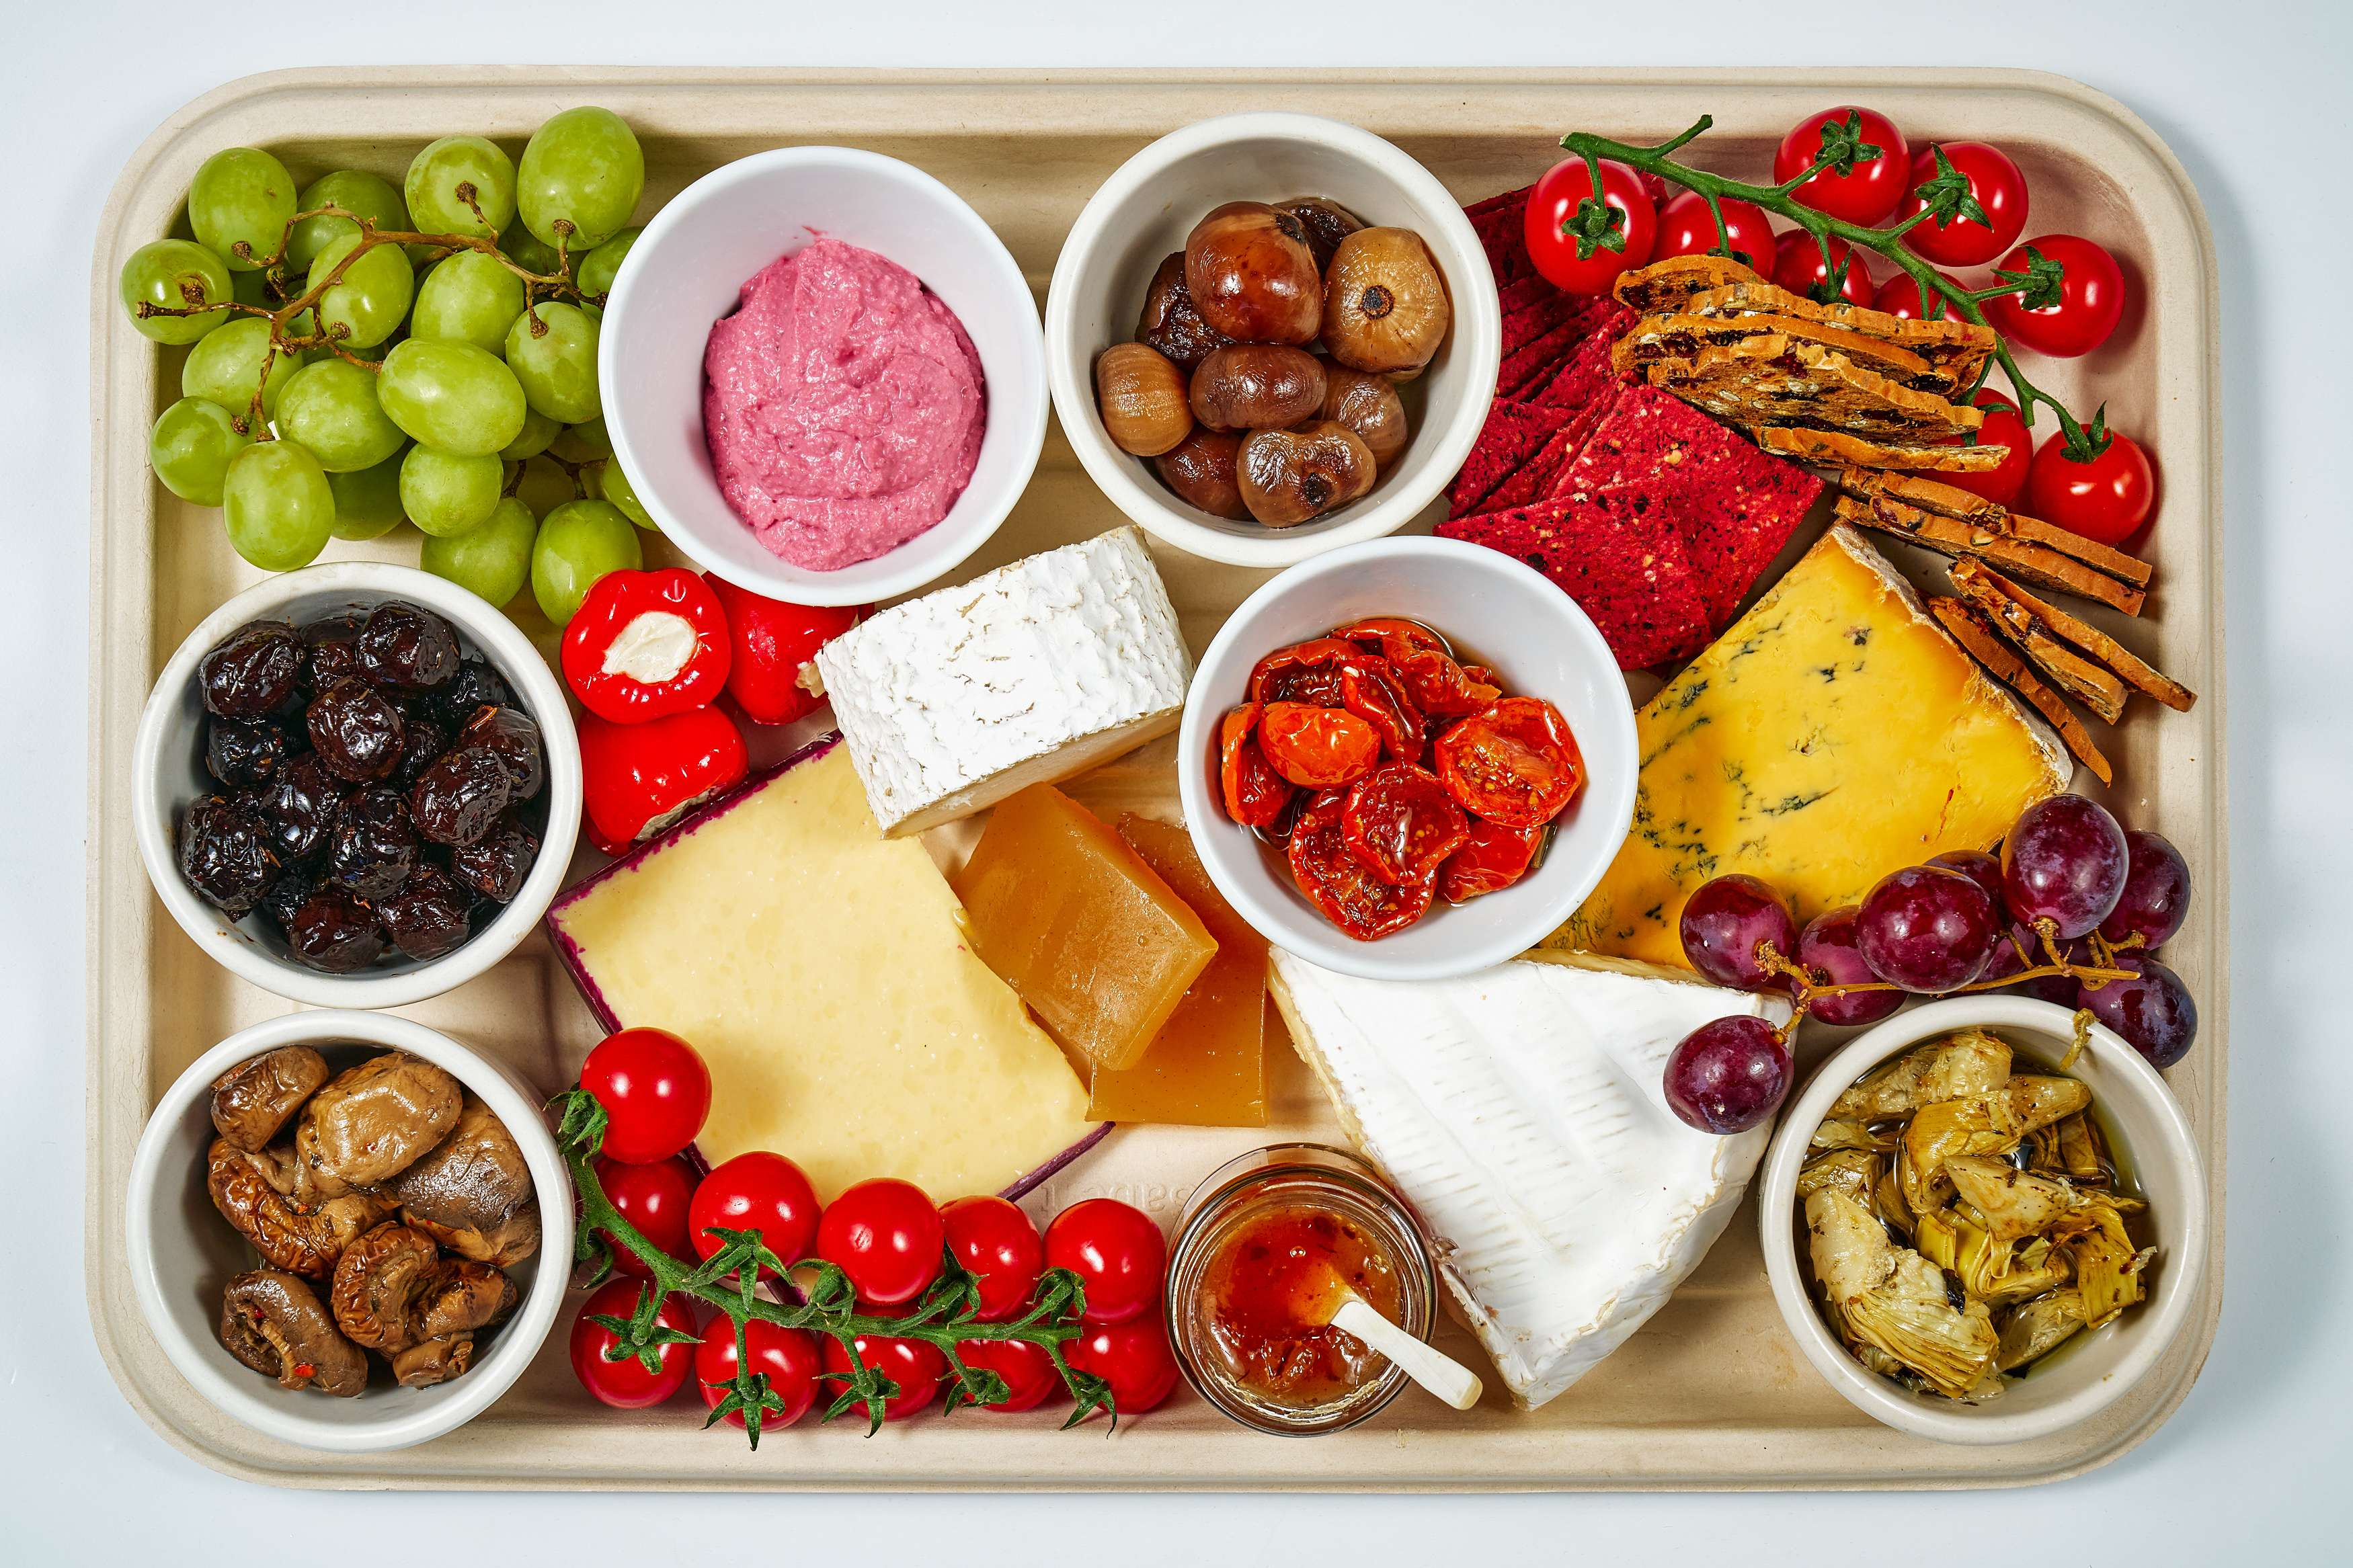 Vegetarian Cheese & Antipasti Platter (Small)